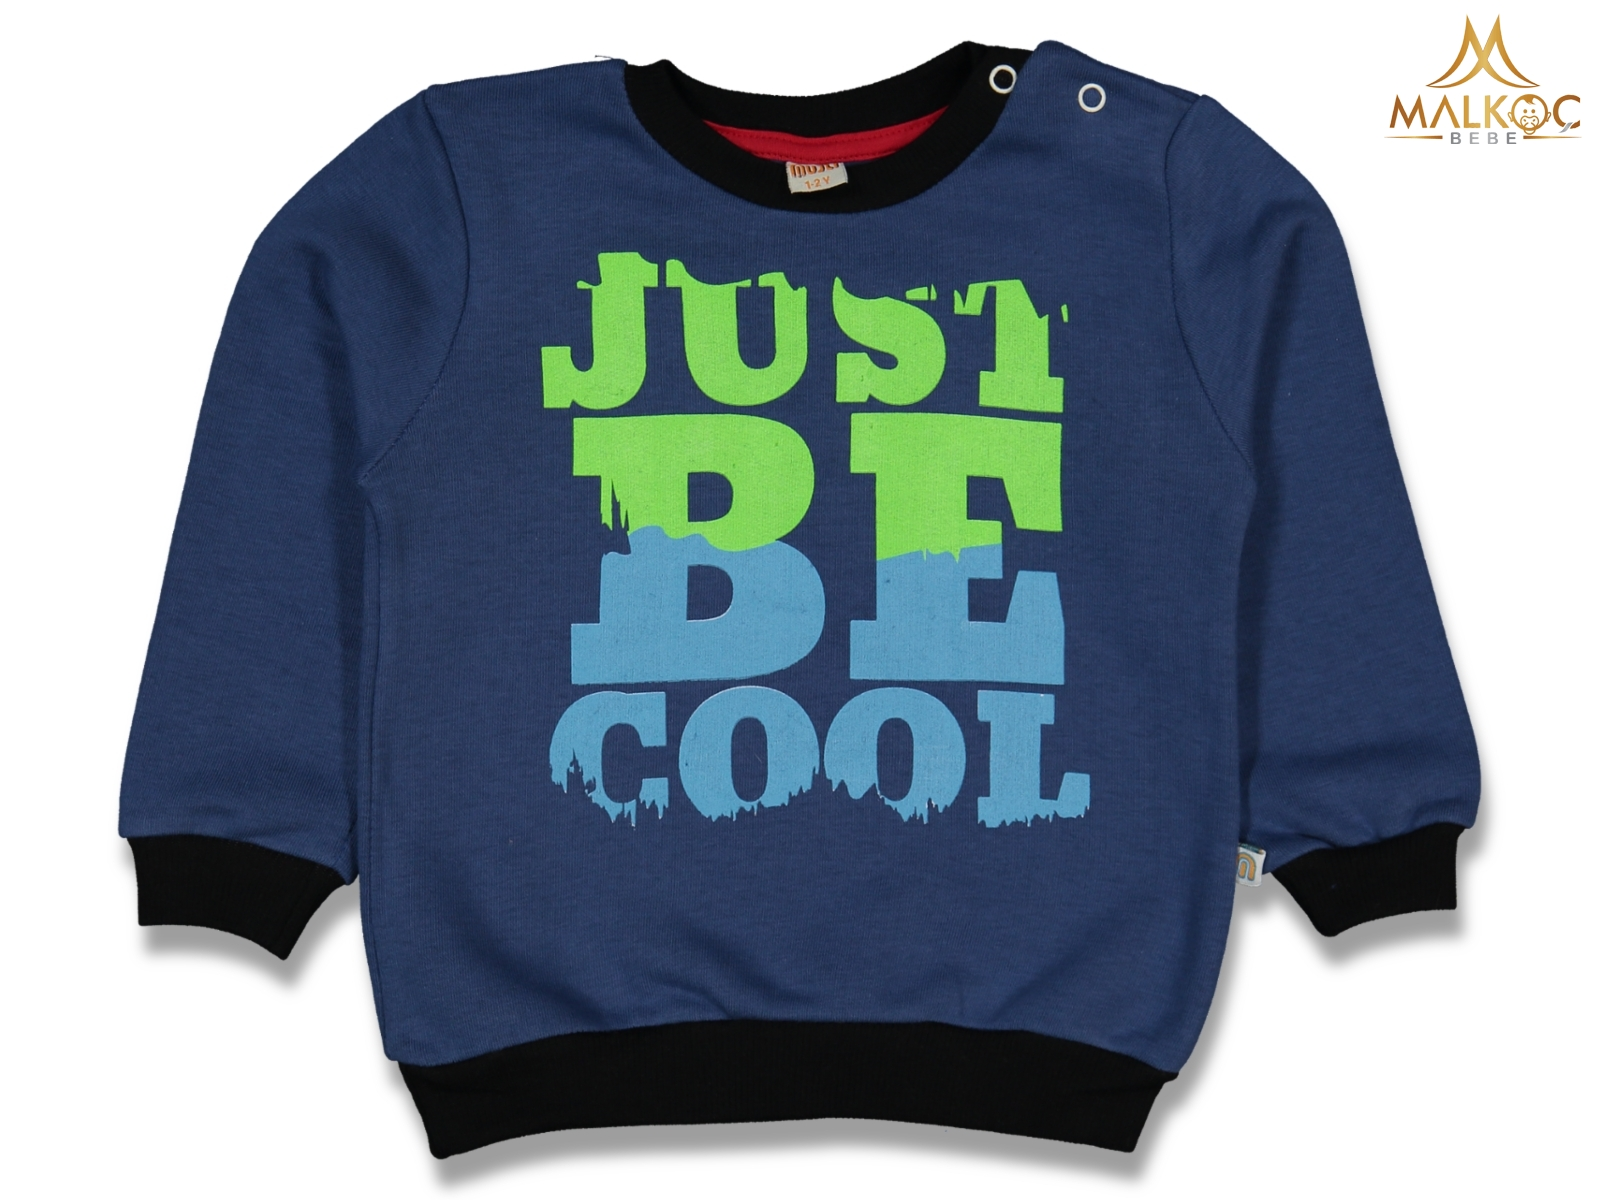 ERKEK 9/24 AY 3 İP JUST BE COOL SWEAT